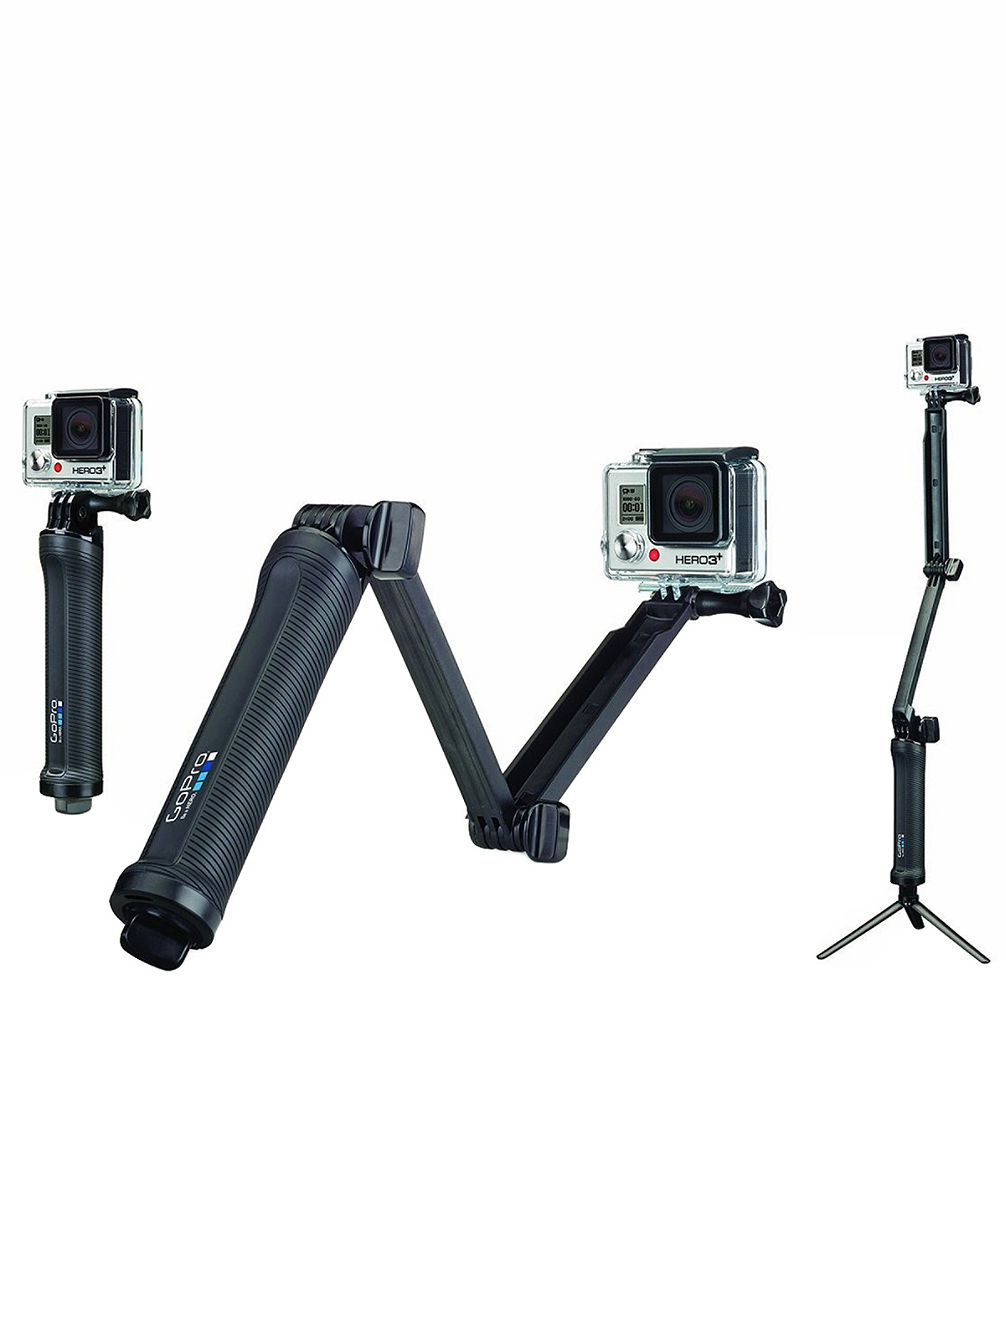 3-Way Mount - Grip / Arm / Tripod